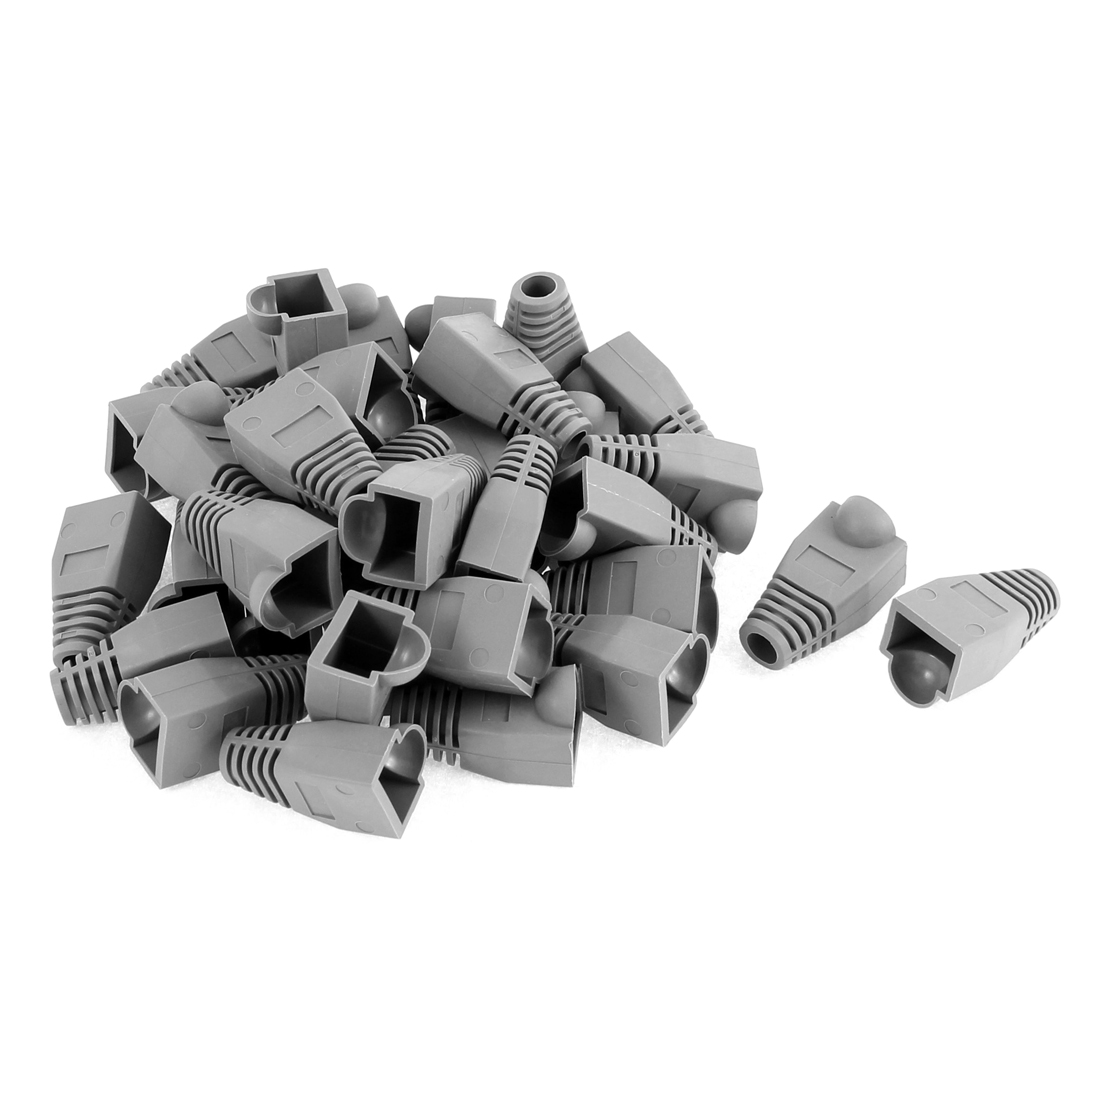 36 Pcs Ethernet Network Cable RJ45 Connector Strain Relief Boots Cover Cap Gray